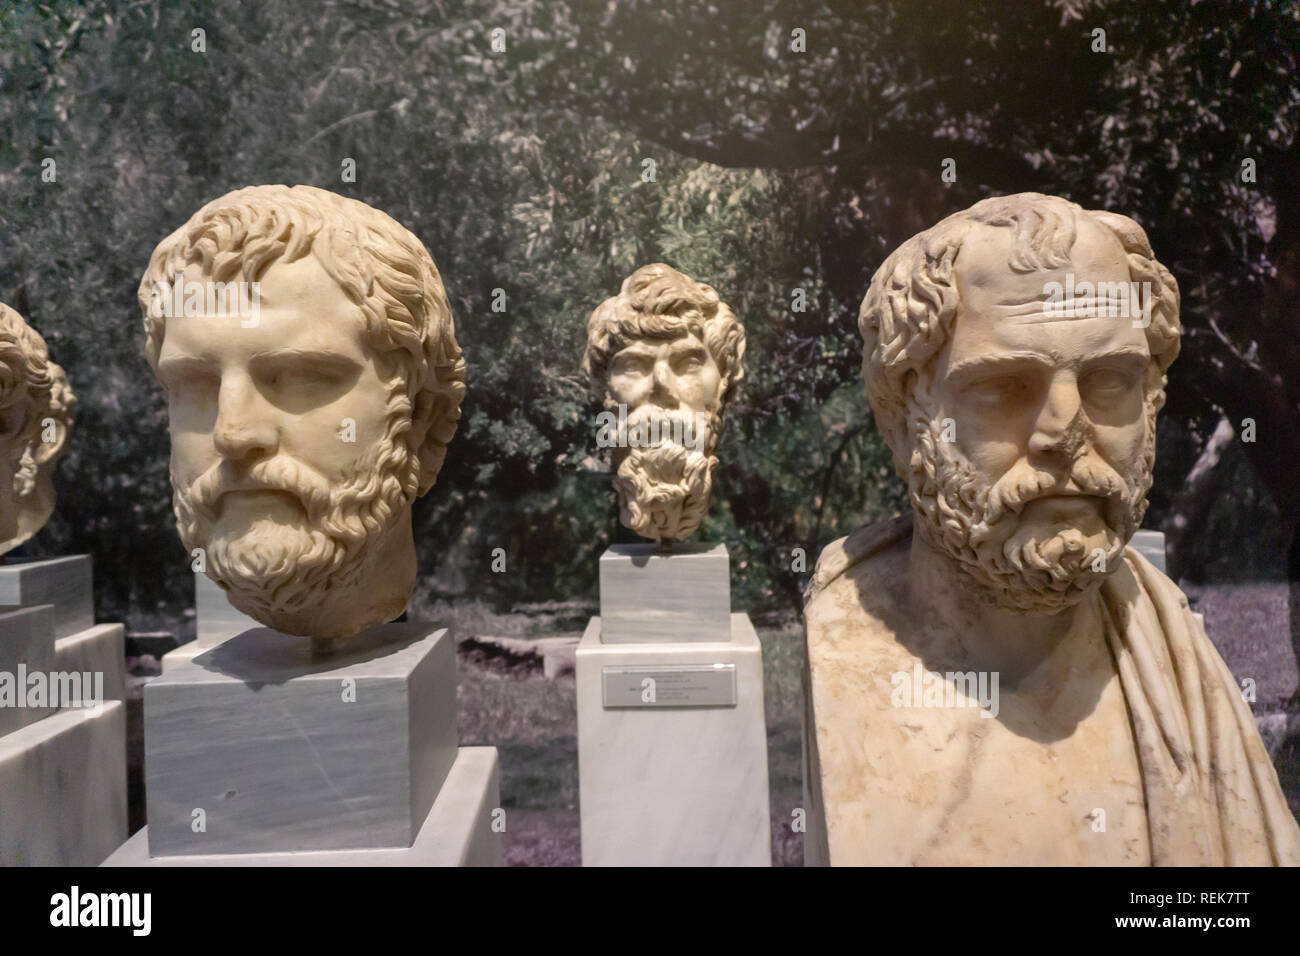 The Perfection And Beauty Of Ancient Greek Sculpture Render One Speechless Everyone Should Have An Opportunity To See It Live Stock Photo Alamy